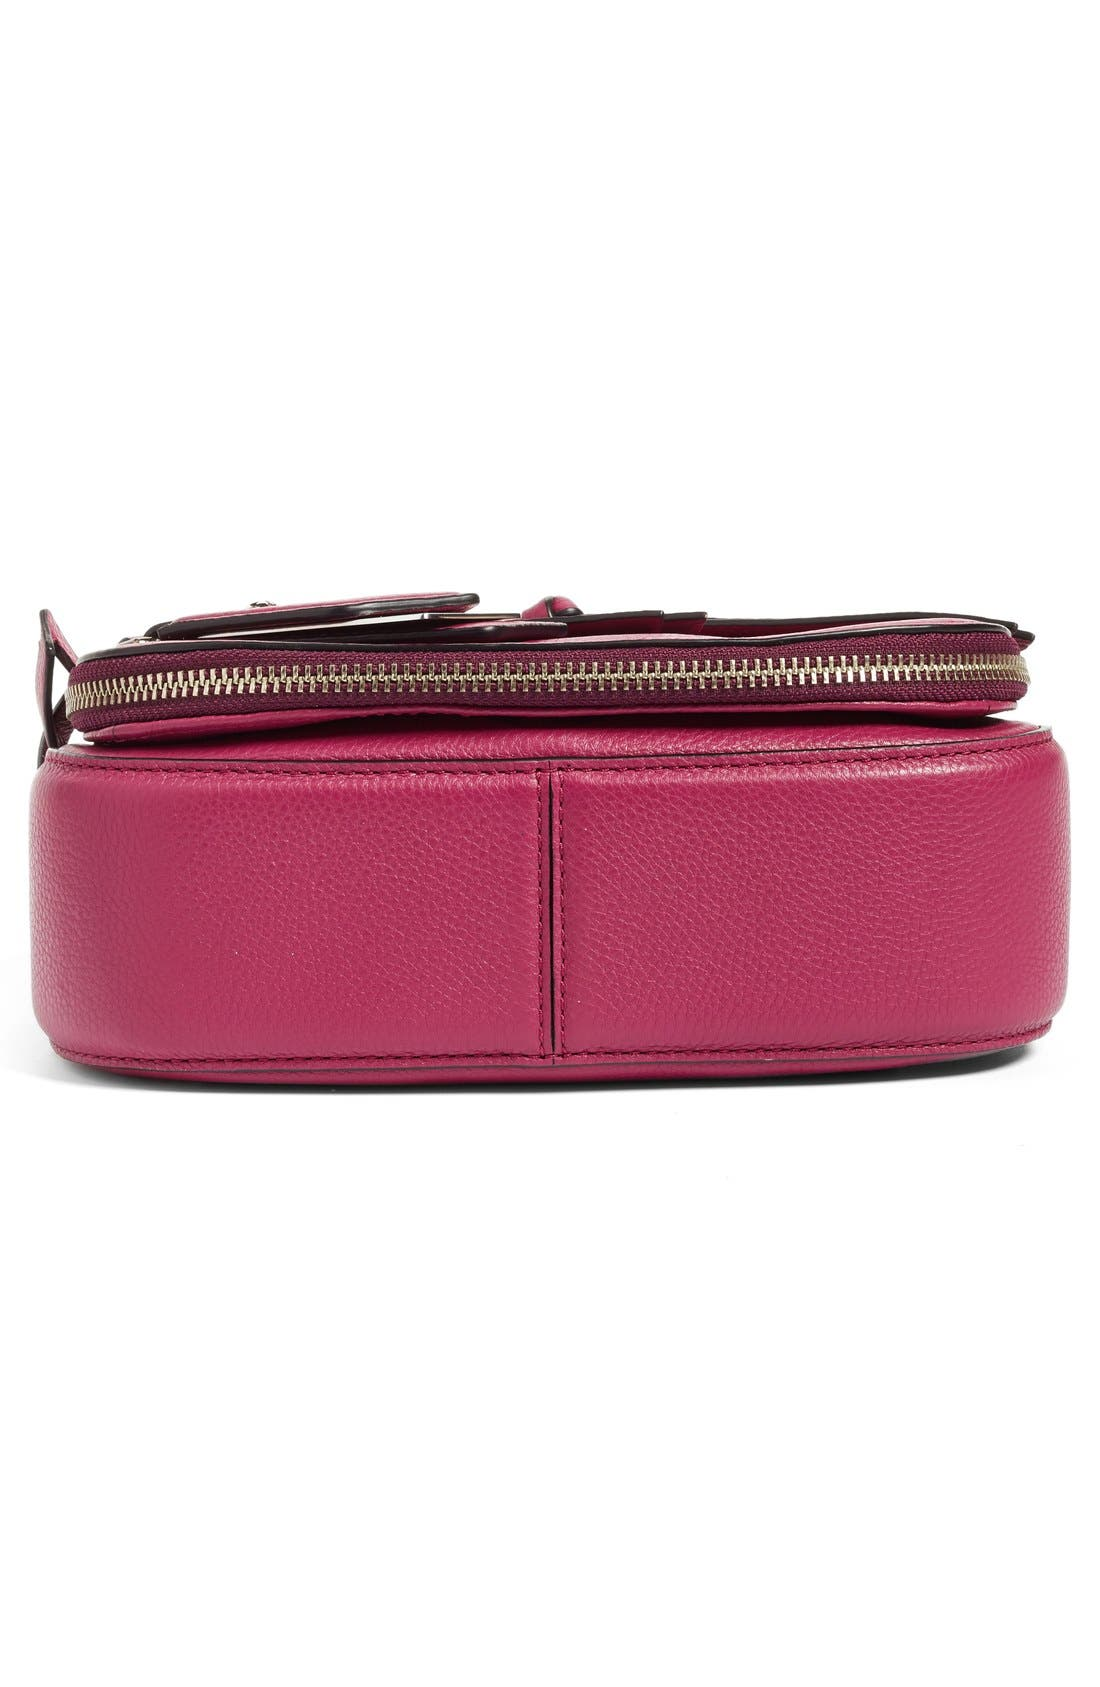 Small Recruit Nomad Pebbled Leather Crossbody Bag,                             Alternate thumbnail 96, color,